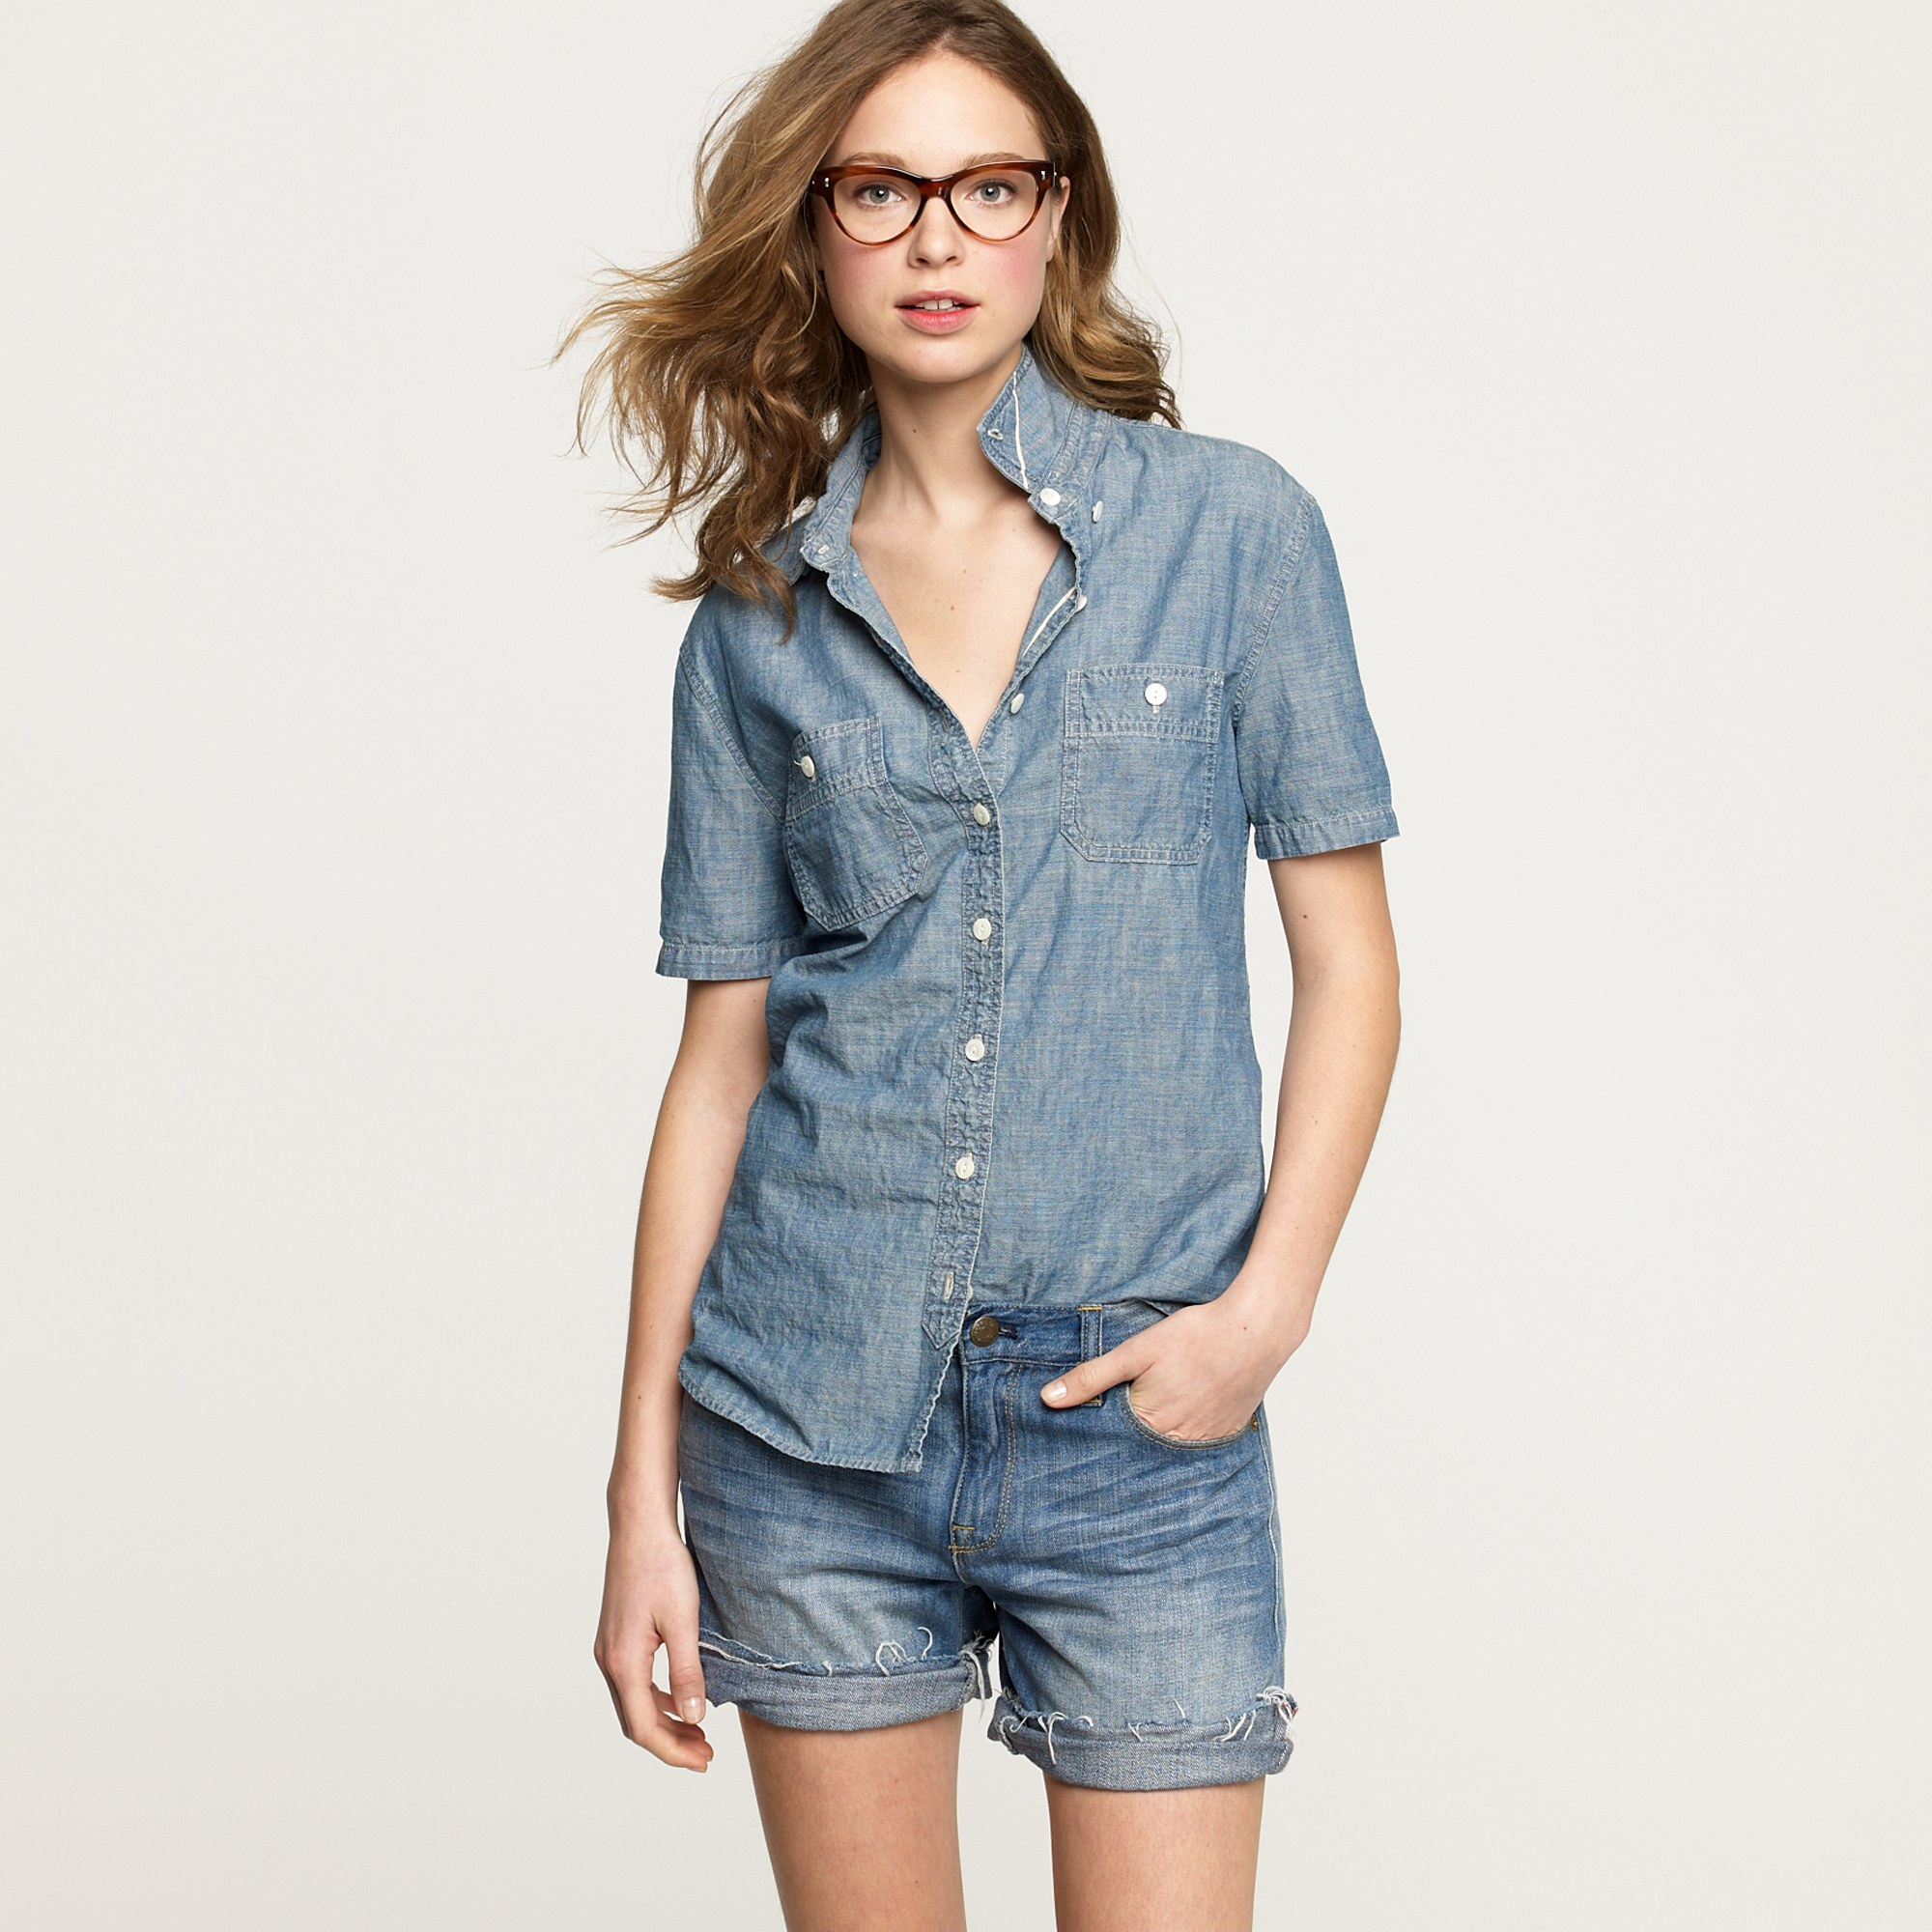 d5f407b712 Chambray Shirt Womens Outfit